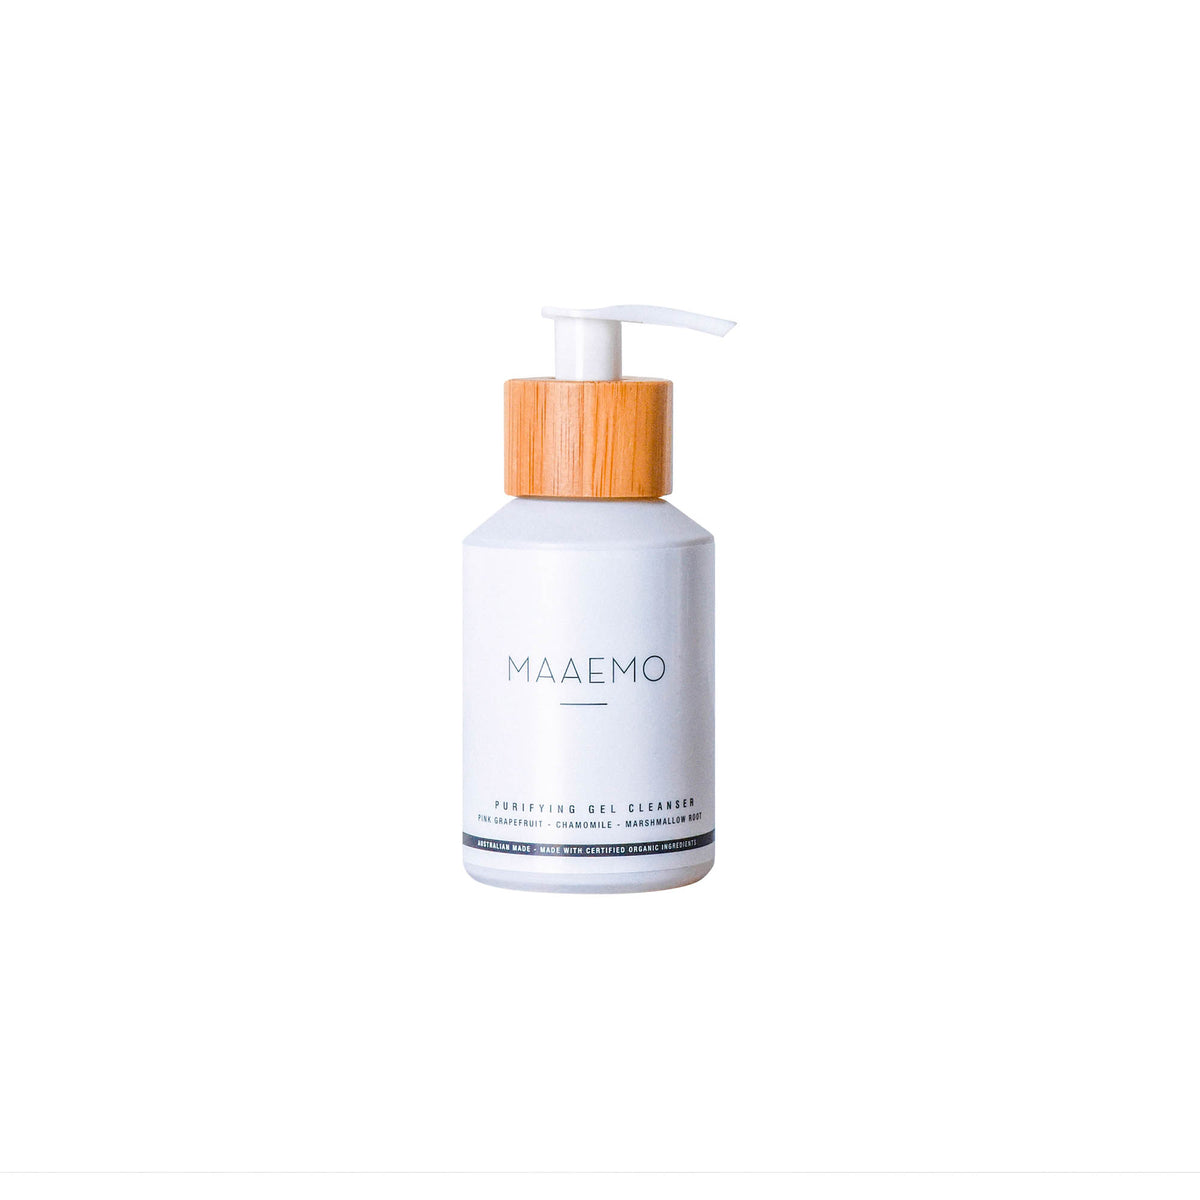 MAAEMO Purifying Gel Cleanser 100ml ACO CERTIFIED ORGANIC - Luna and Beau